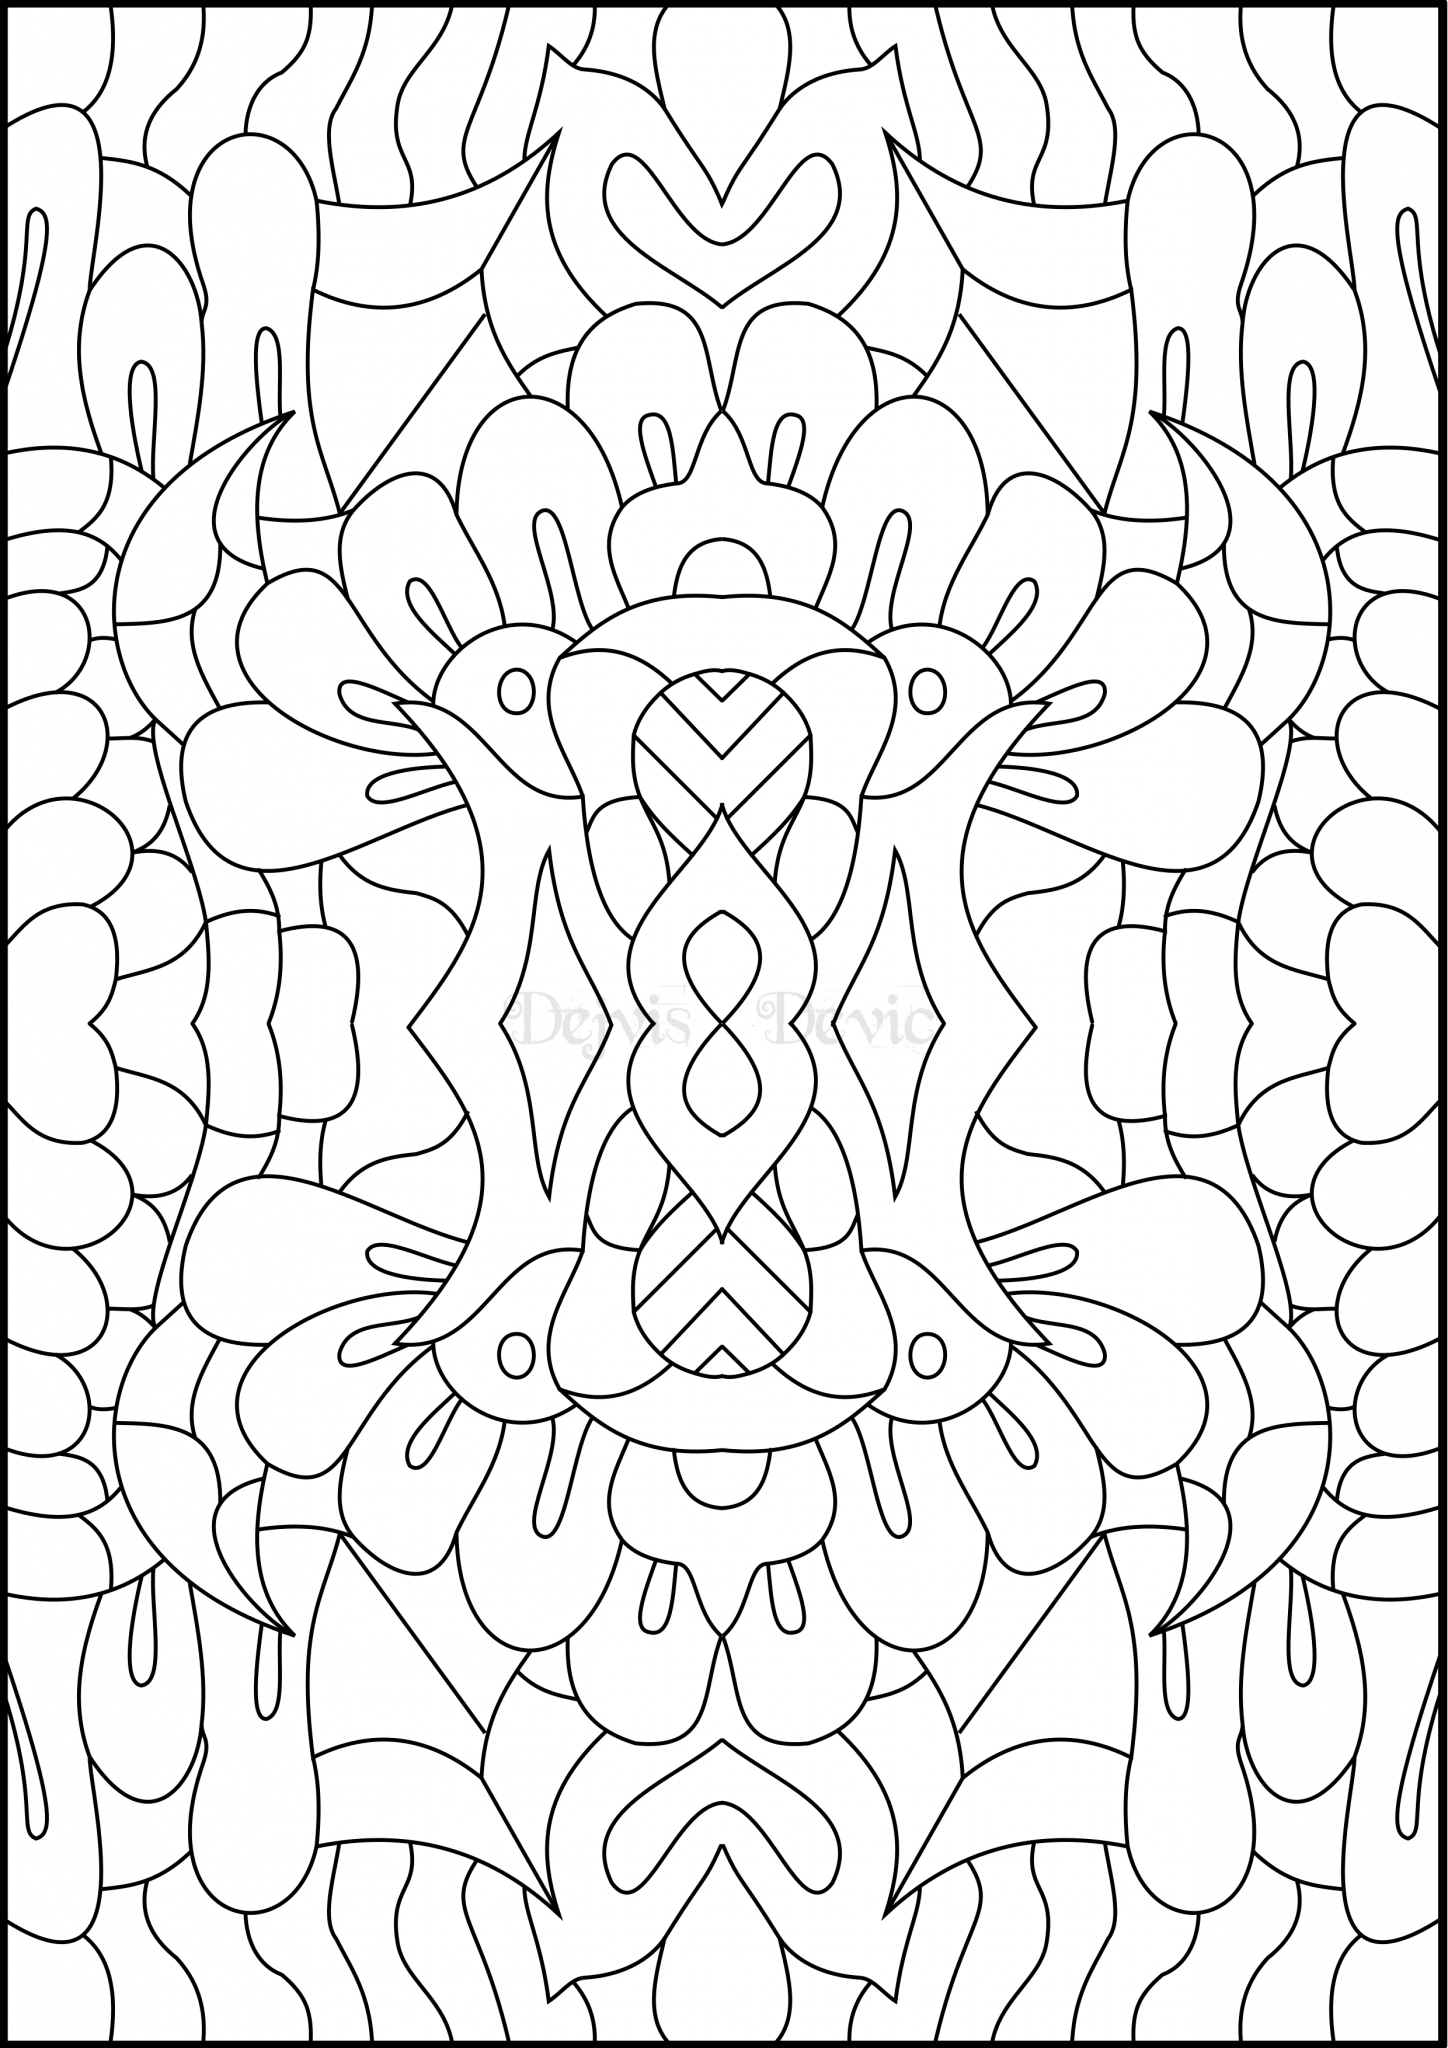 Medial pattern printable coloring page